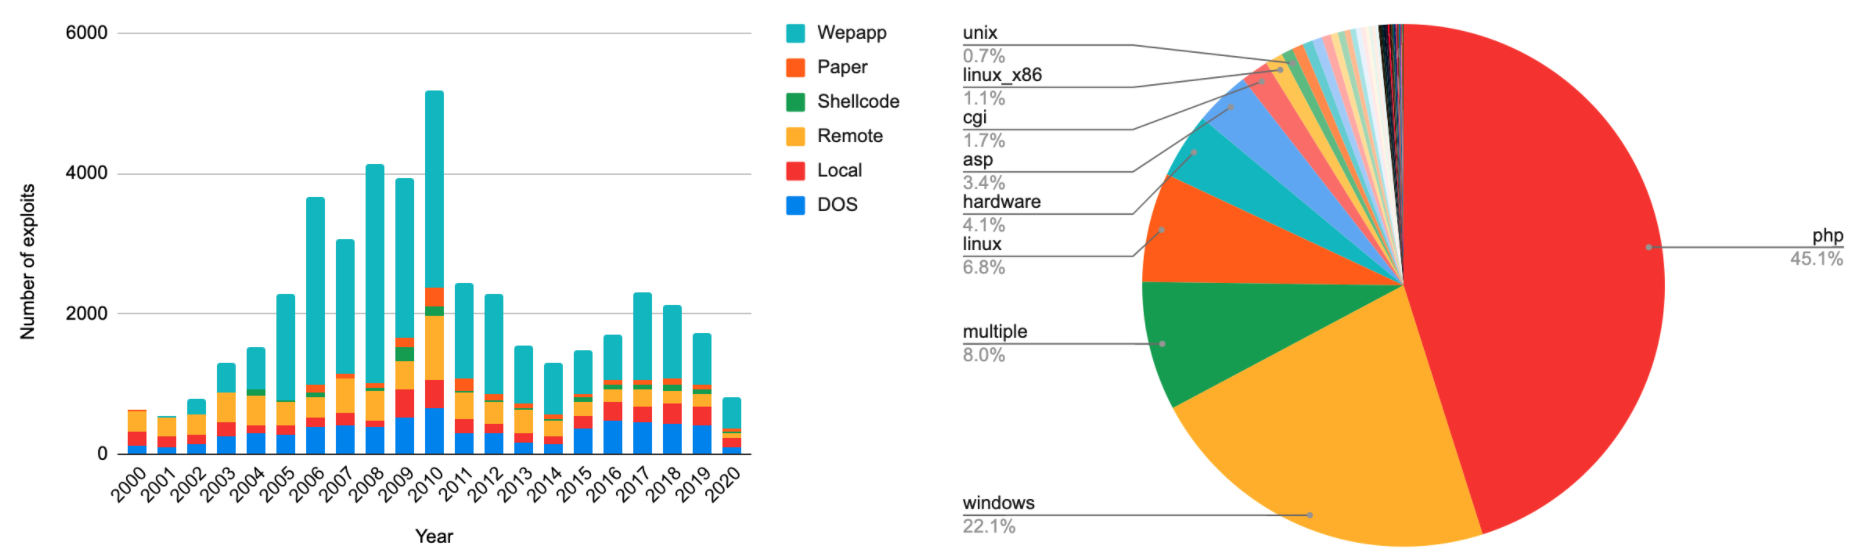 Left side bar graph shows number of exploits published since 2000, categorized by Web apps, Paper, Shell code, remote, local or DOS. The pie chart on the right categorizes the state of exploit development based on the platforms they were written on, including unix, linux x86, cgi, asp, hardware, linux, windows and multiple platforms.